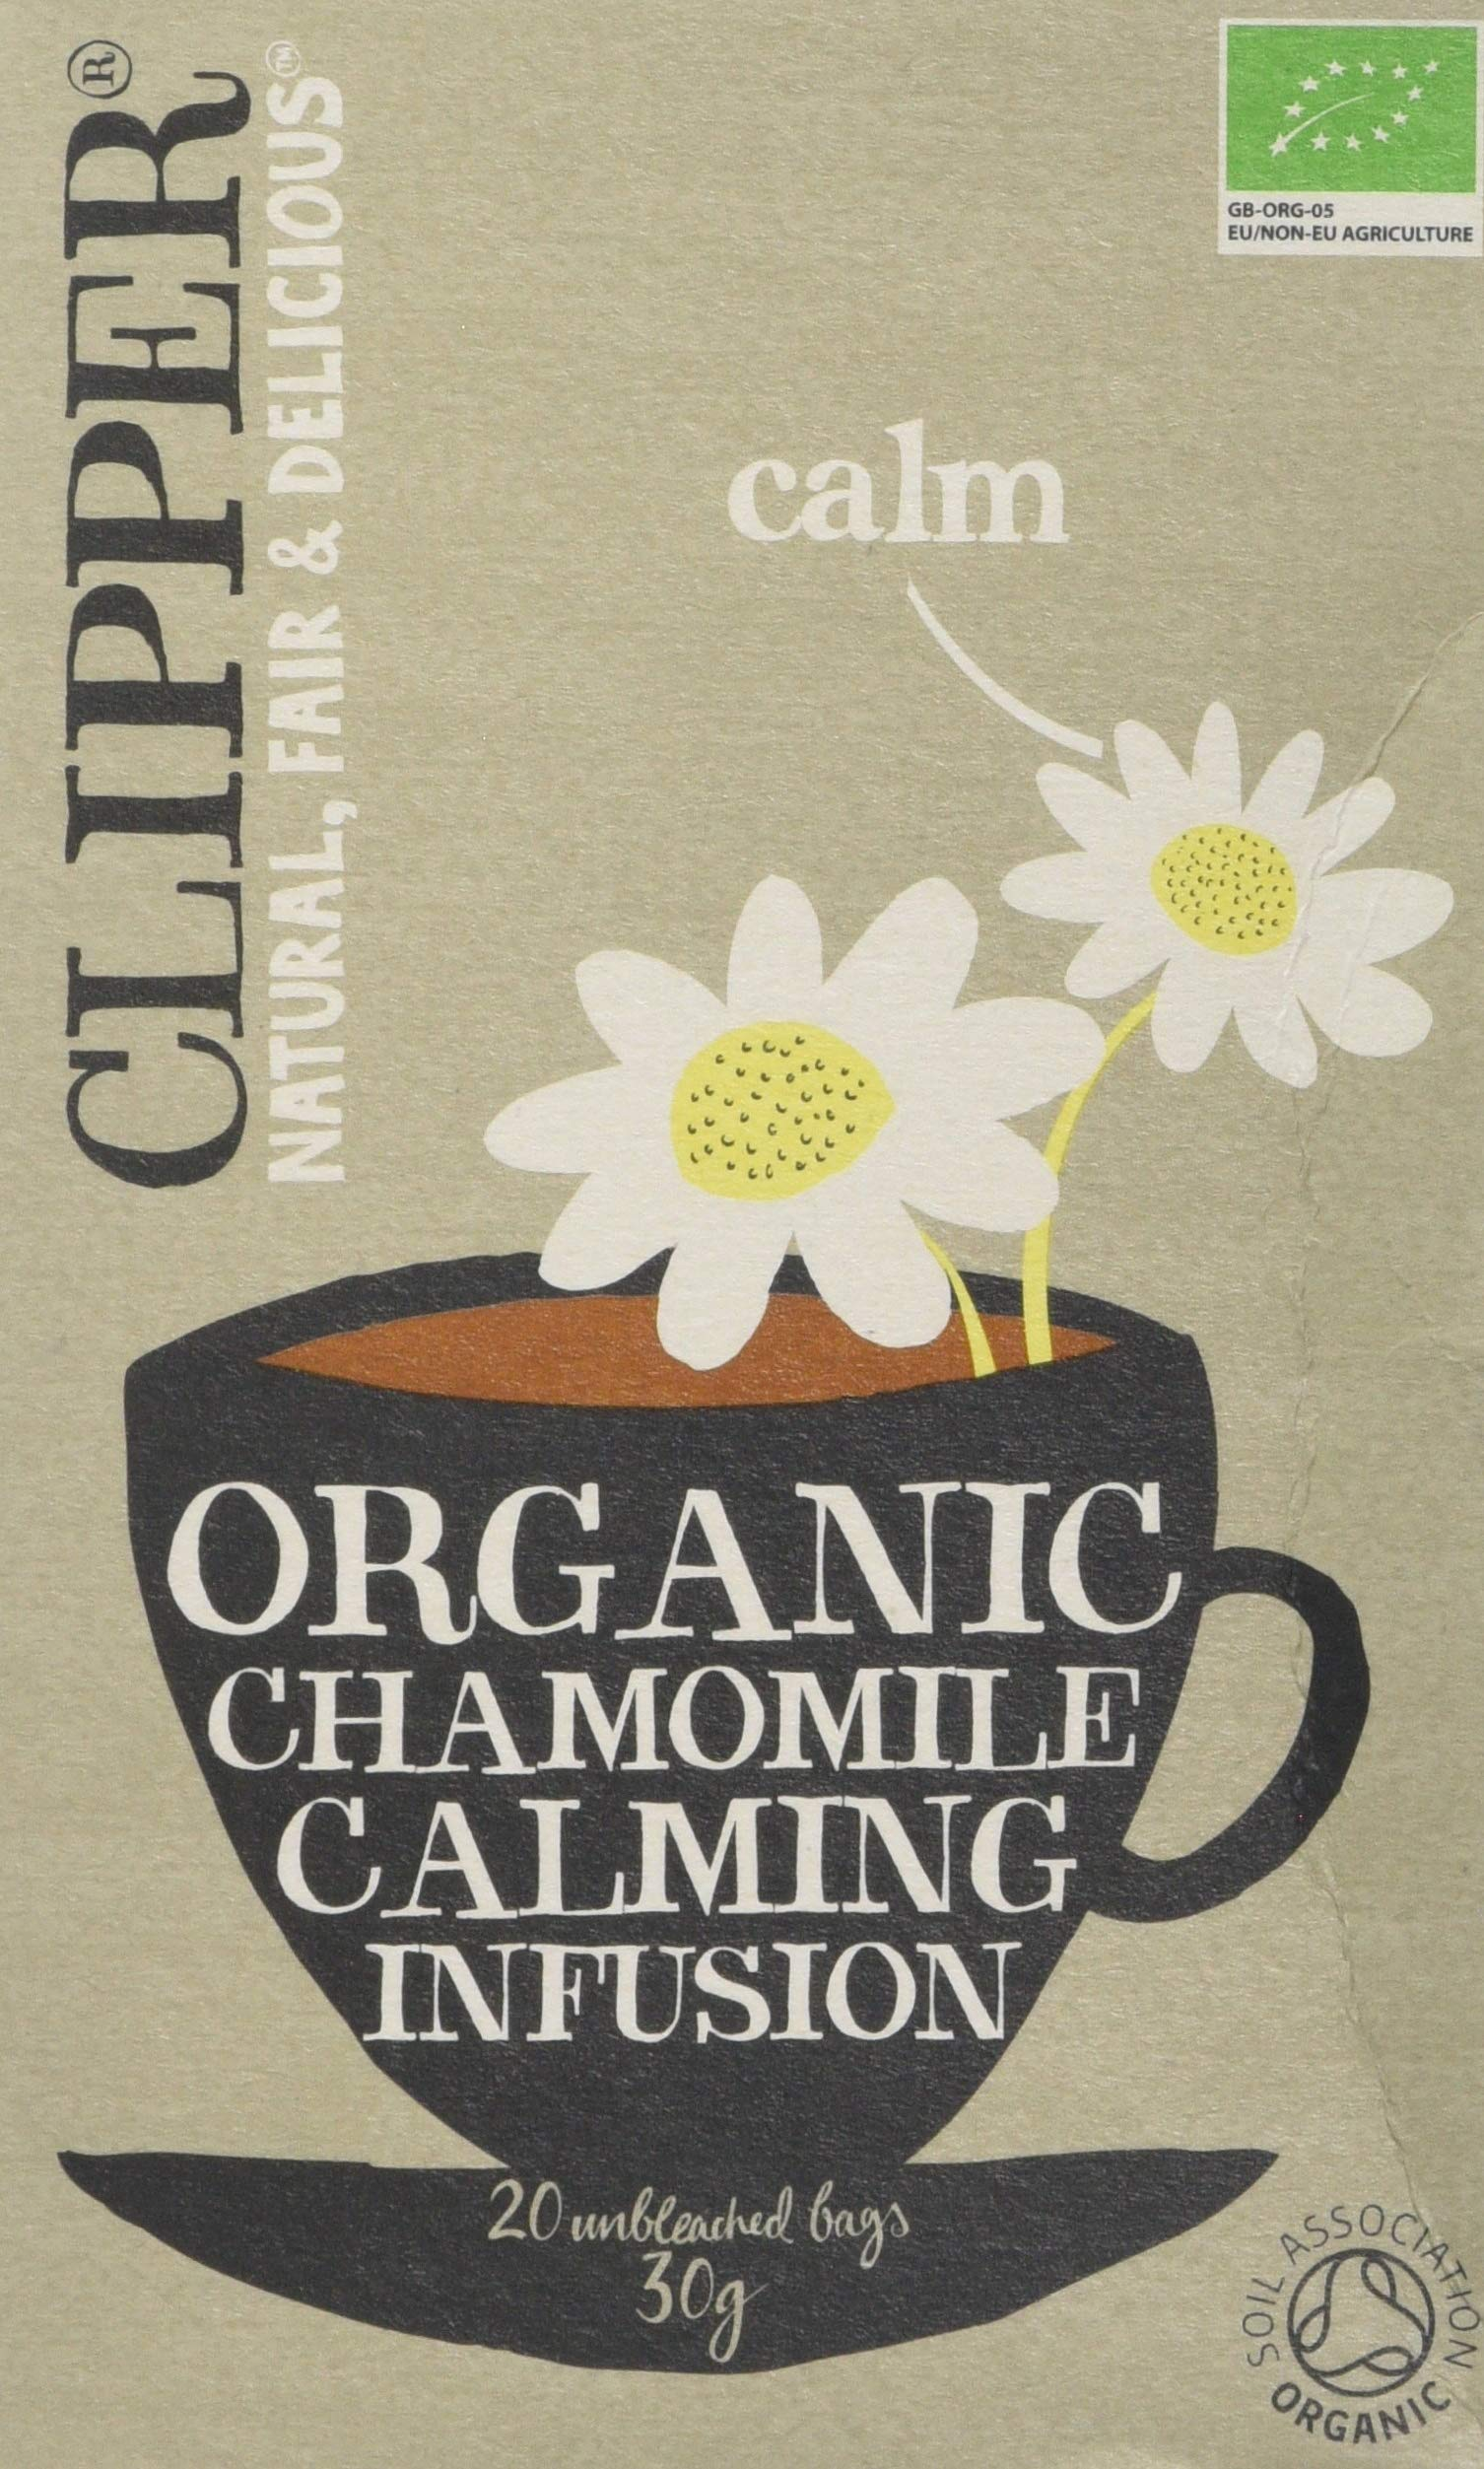 Clipper organic chamomile calming tea bundle (soil association) (infusions) (6 packs of 20 bags) (120 bags) (a floral tea with aromas of camomile) (brews in 2-5 minutes)